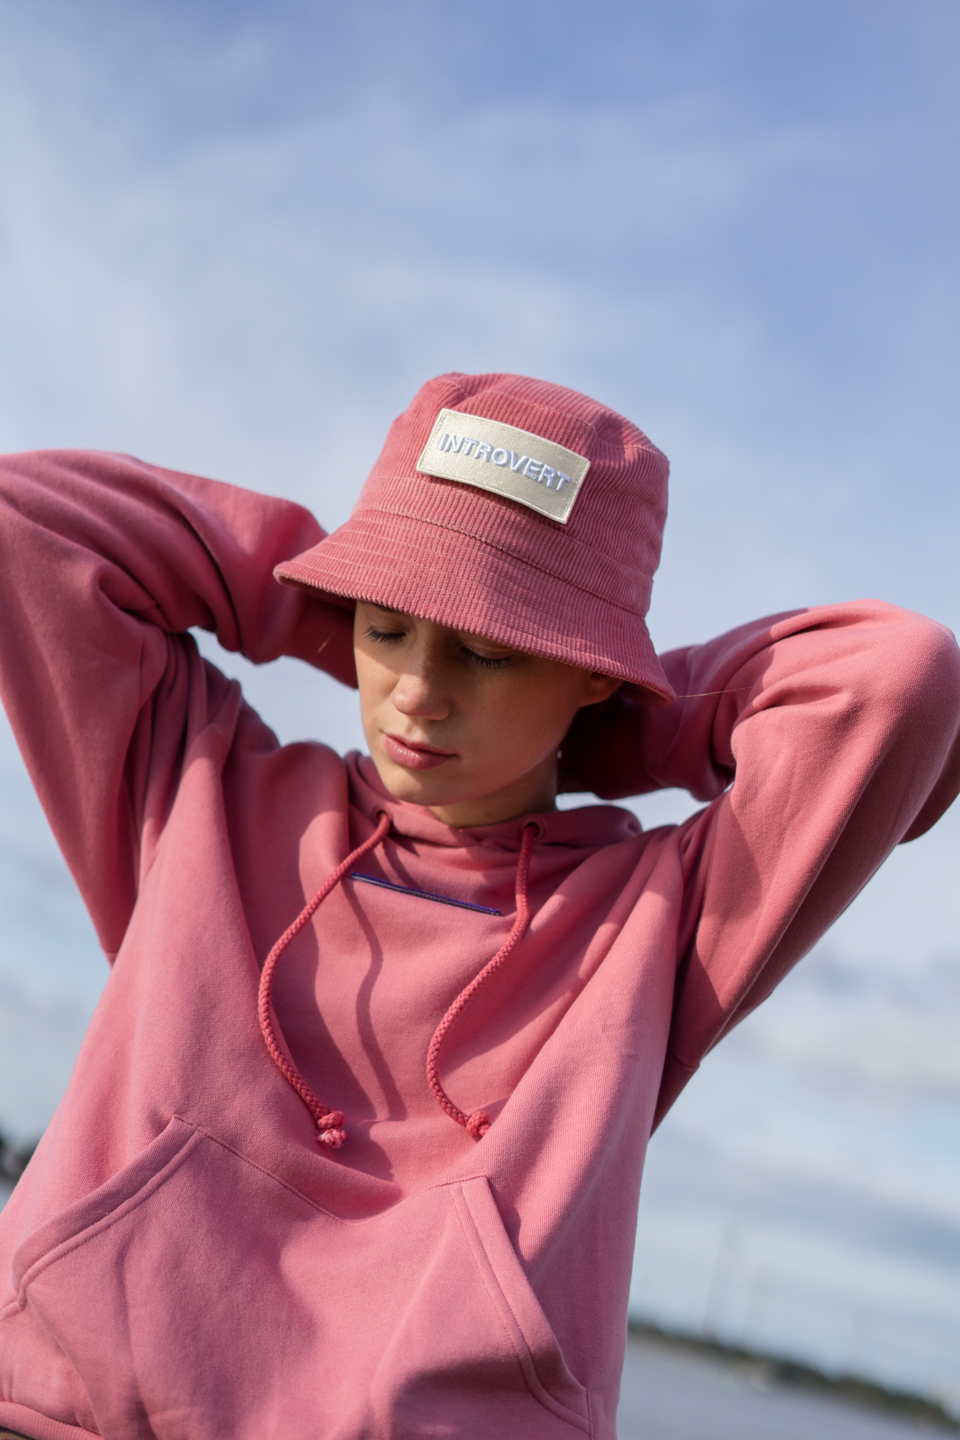 #allthefeels, Monki, Mental health, outfit, pink, Thank god it's